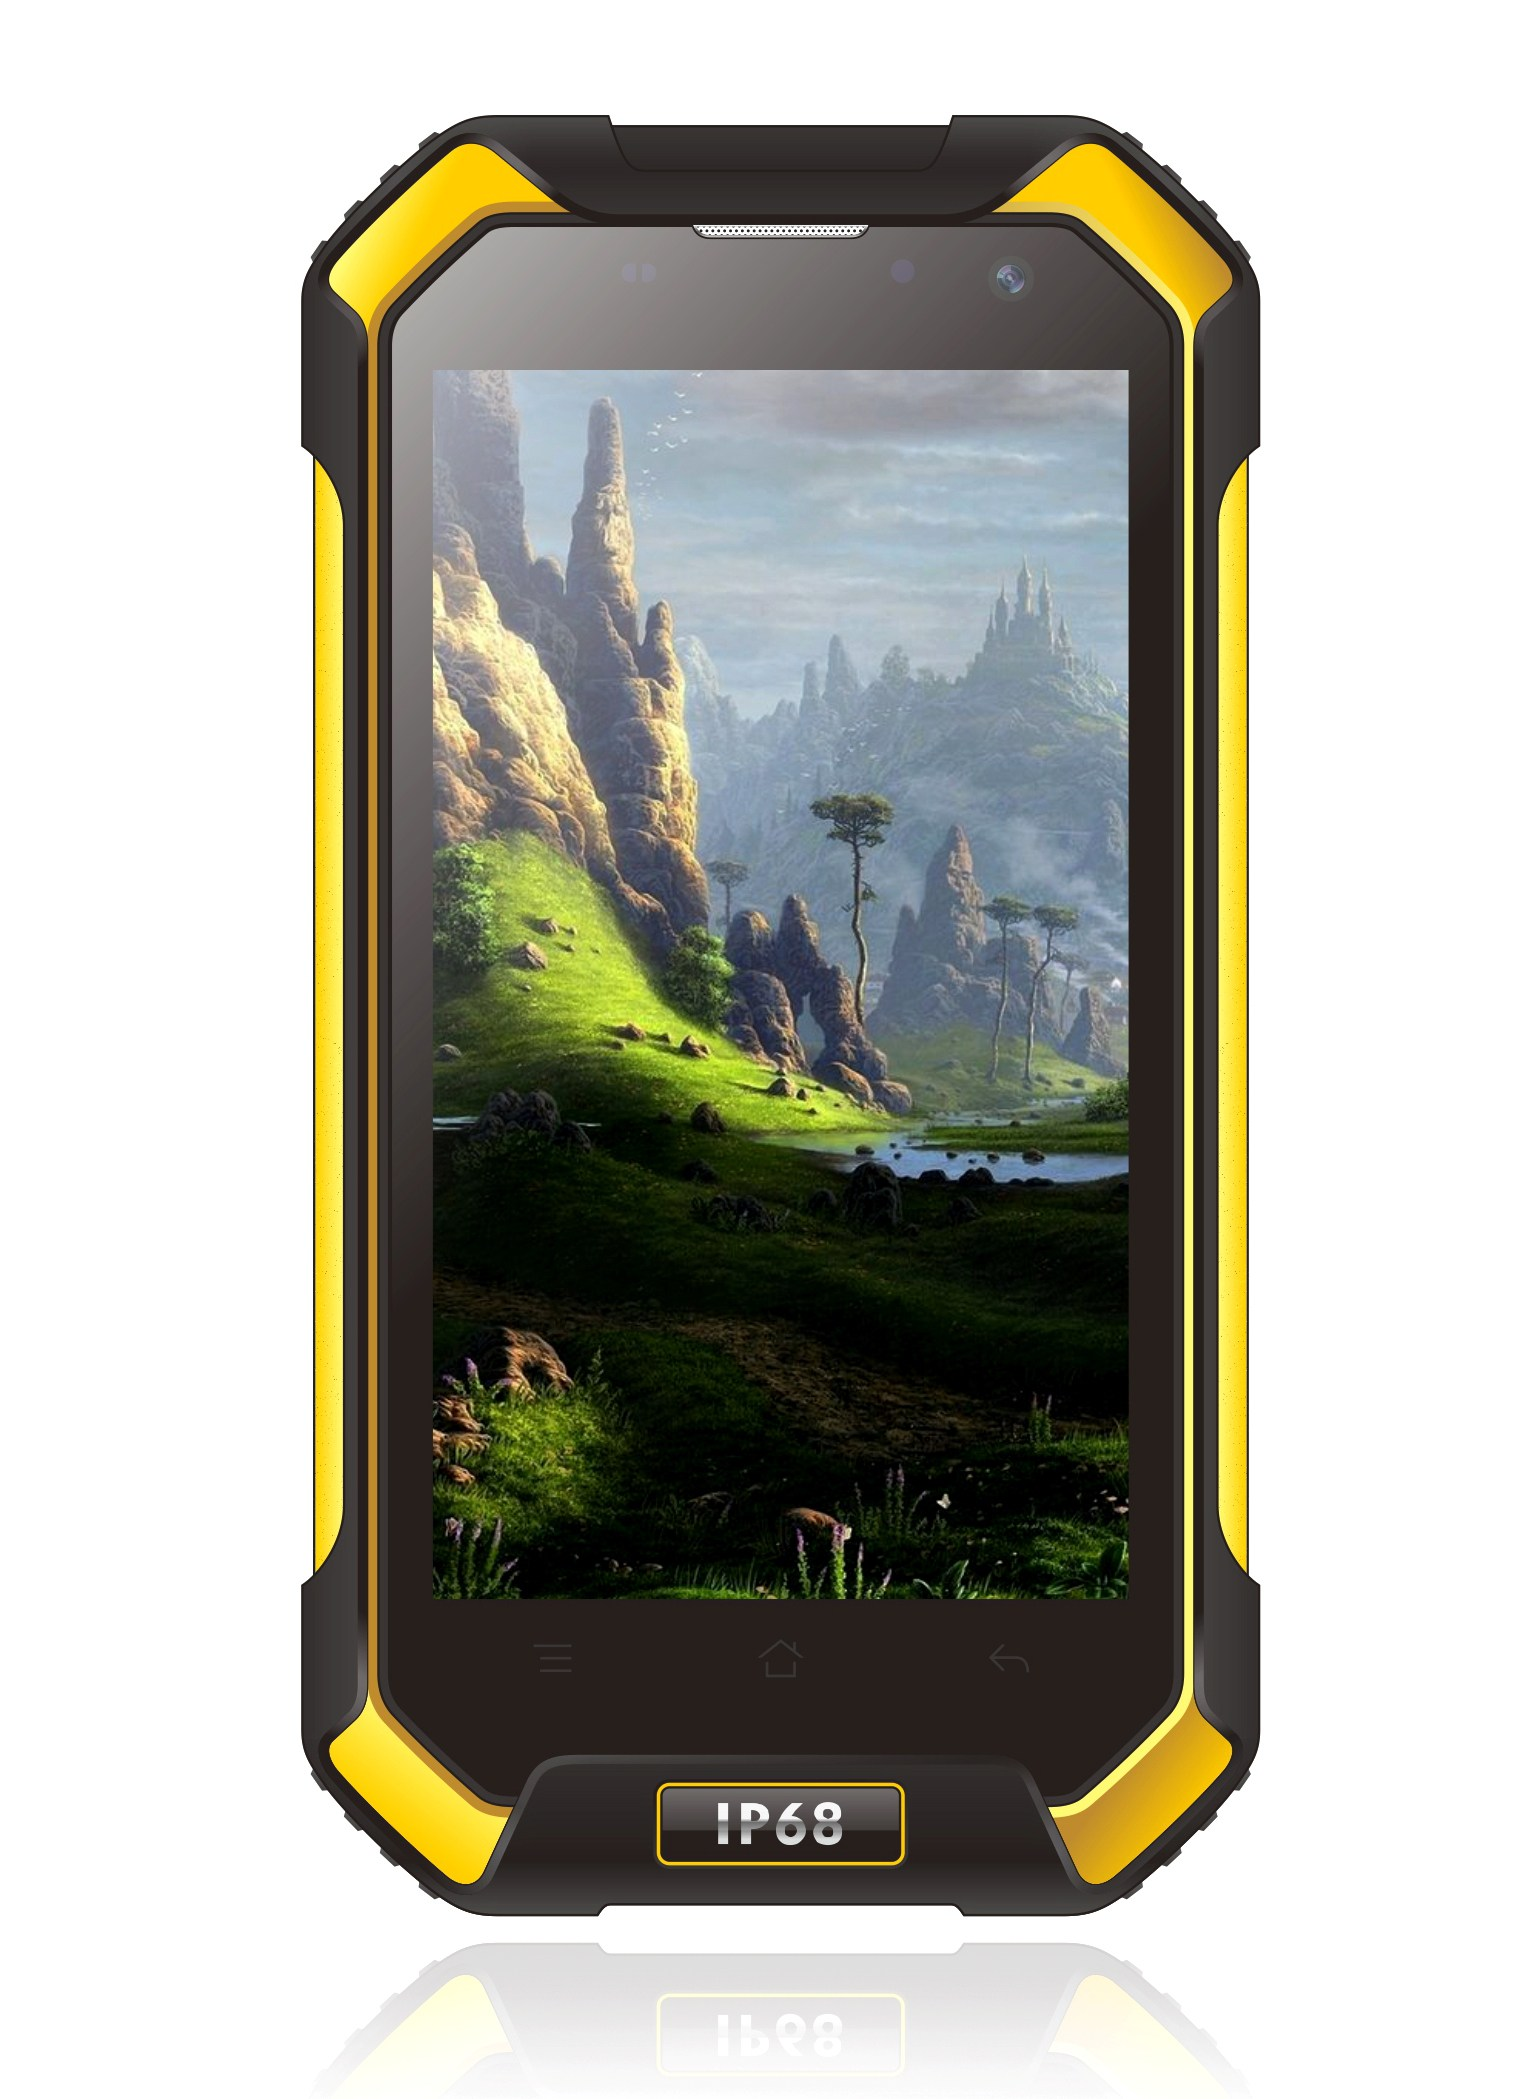 Blackview BV6000 promo picture, yellow and black phone on a white background with the display turned on